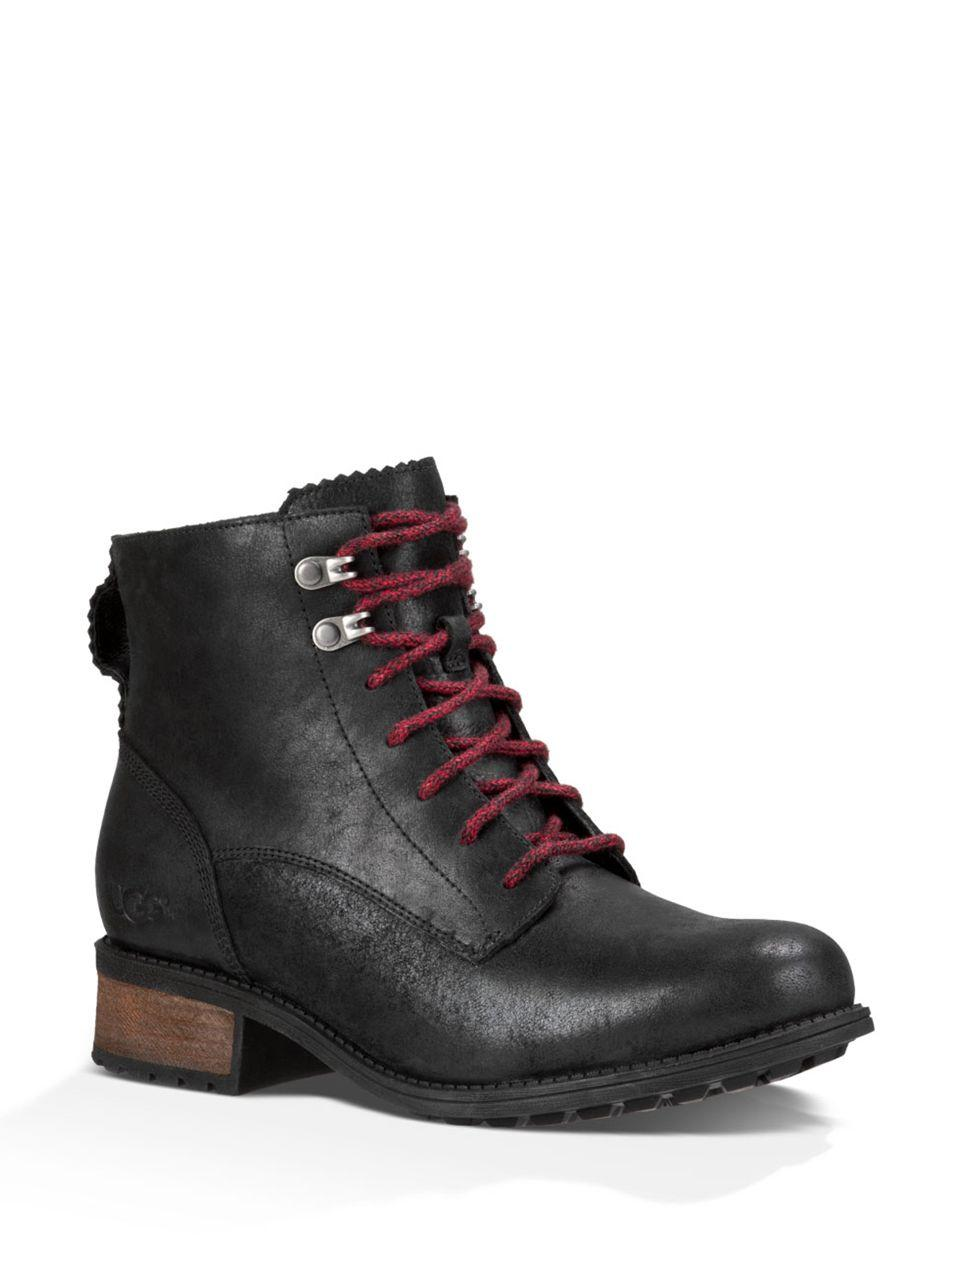 Ugg Denhali Pure Leather Lace Up Boots In Black For Men Lyst